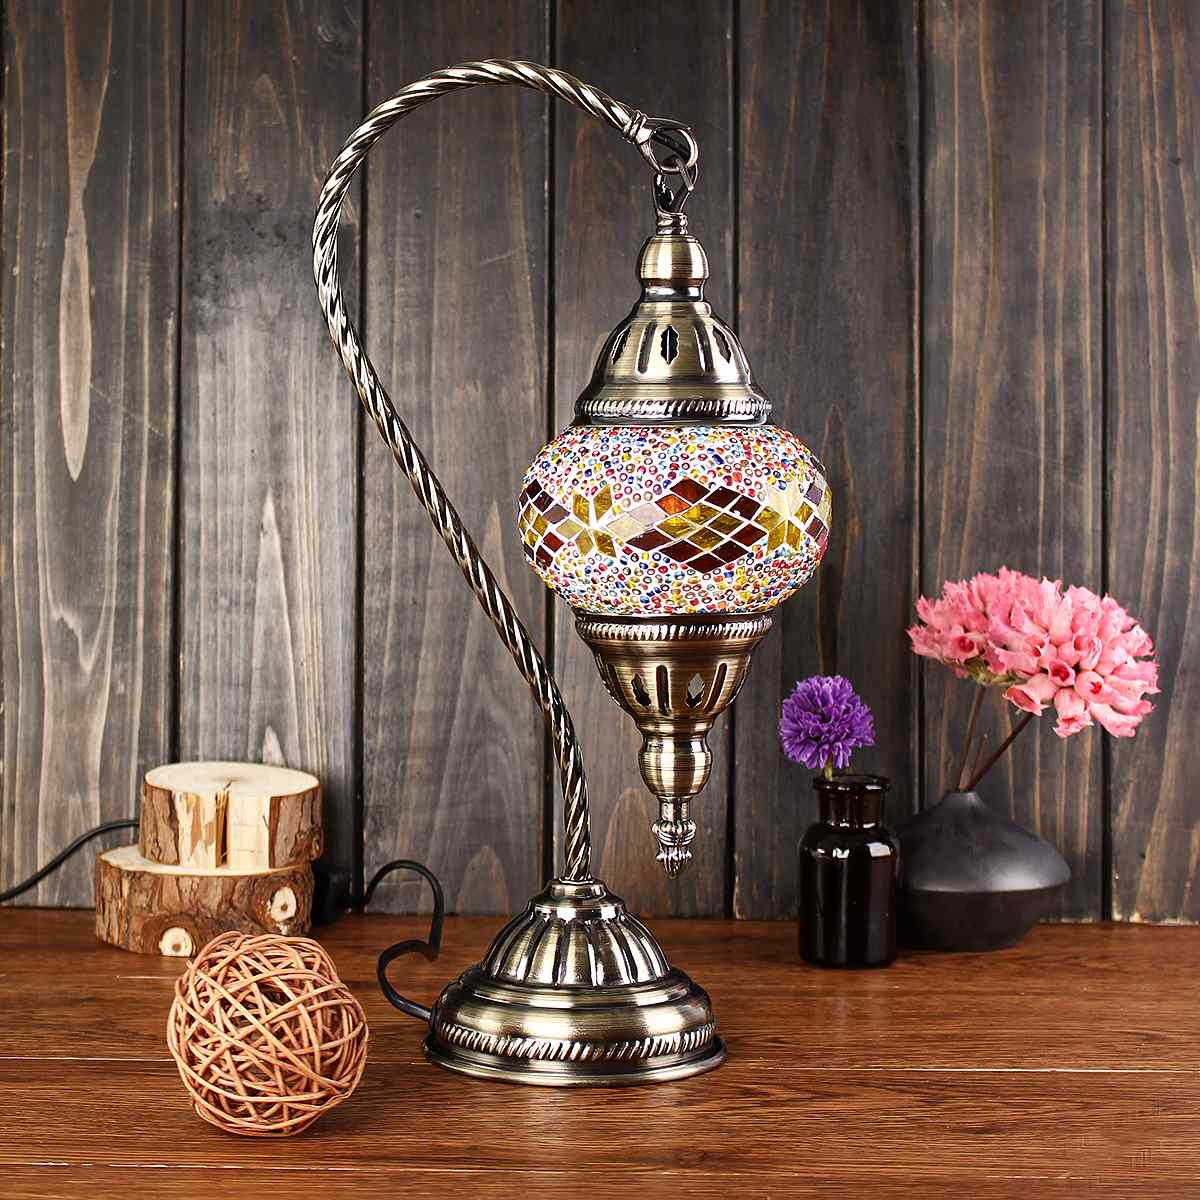 Table Lamps Light Turkish Decorative for Bedroom Living Room Hand inlaid Glass Desk Light Morocco Style Gift E14 Vintage